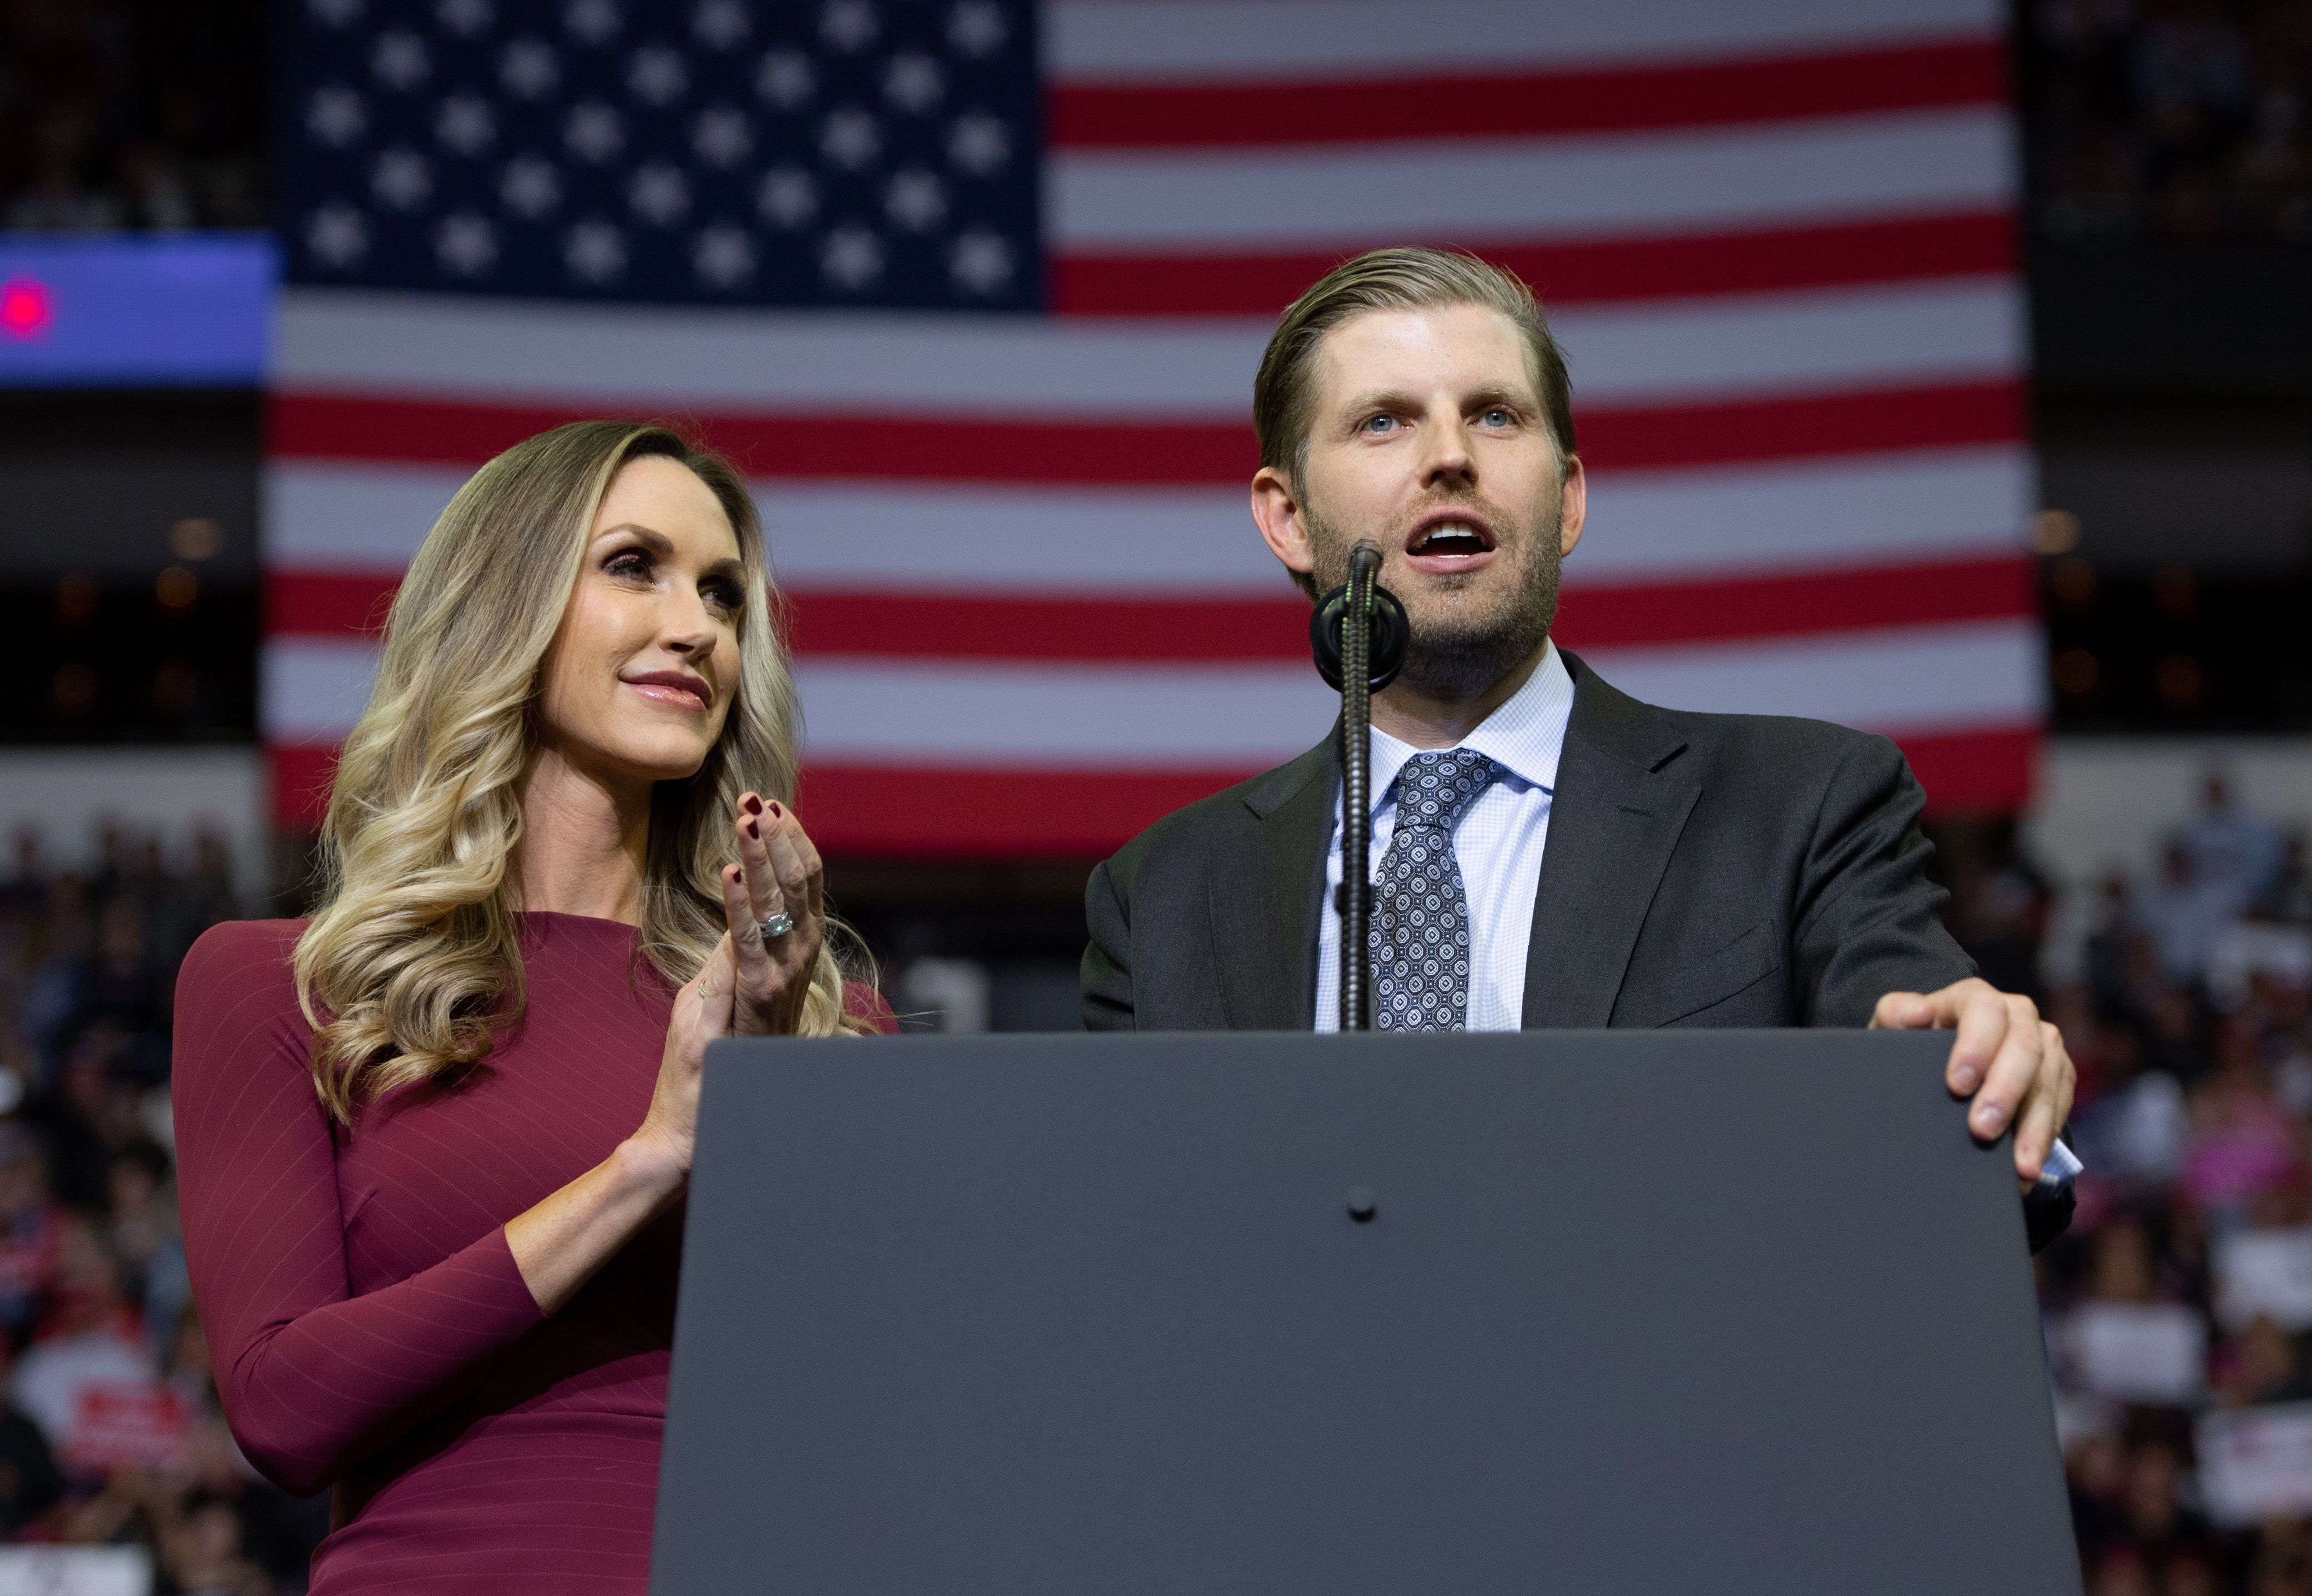 Eric and Lara Trump speak during a campaign rally hosted by US President Donald Trump at the Toyota Center in Houston, Texas, October 22, 2018. (Photo by SAUL LOEB / AFP)        (Photo credit should read SAUL LOEB/AFP/Getty Images)